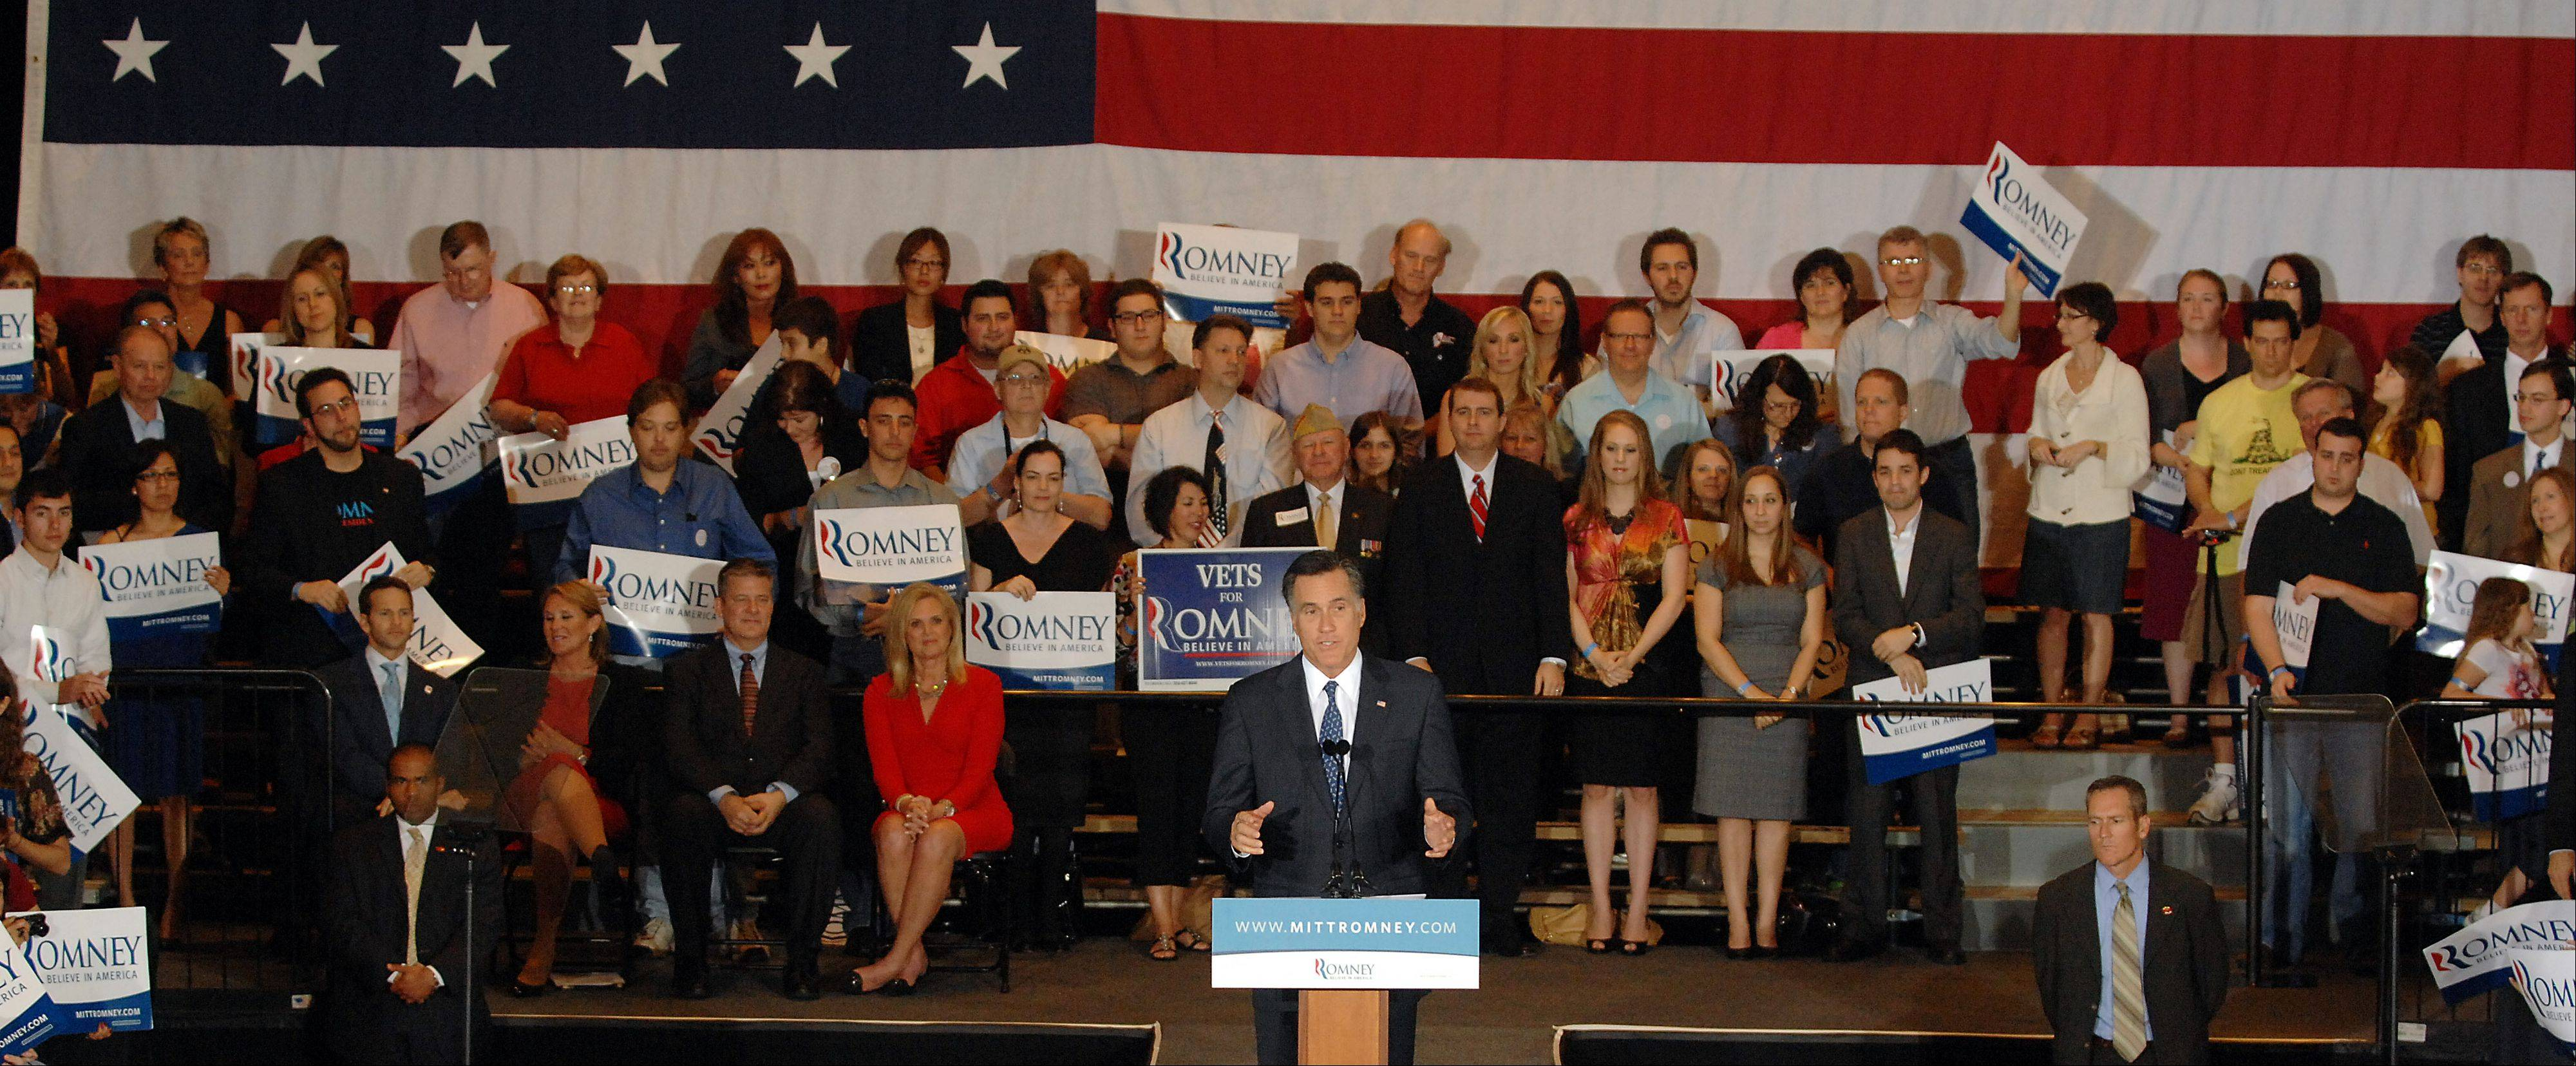 Romney stay a boon for Schaumburg Renaissance